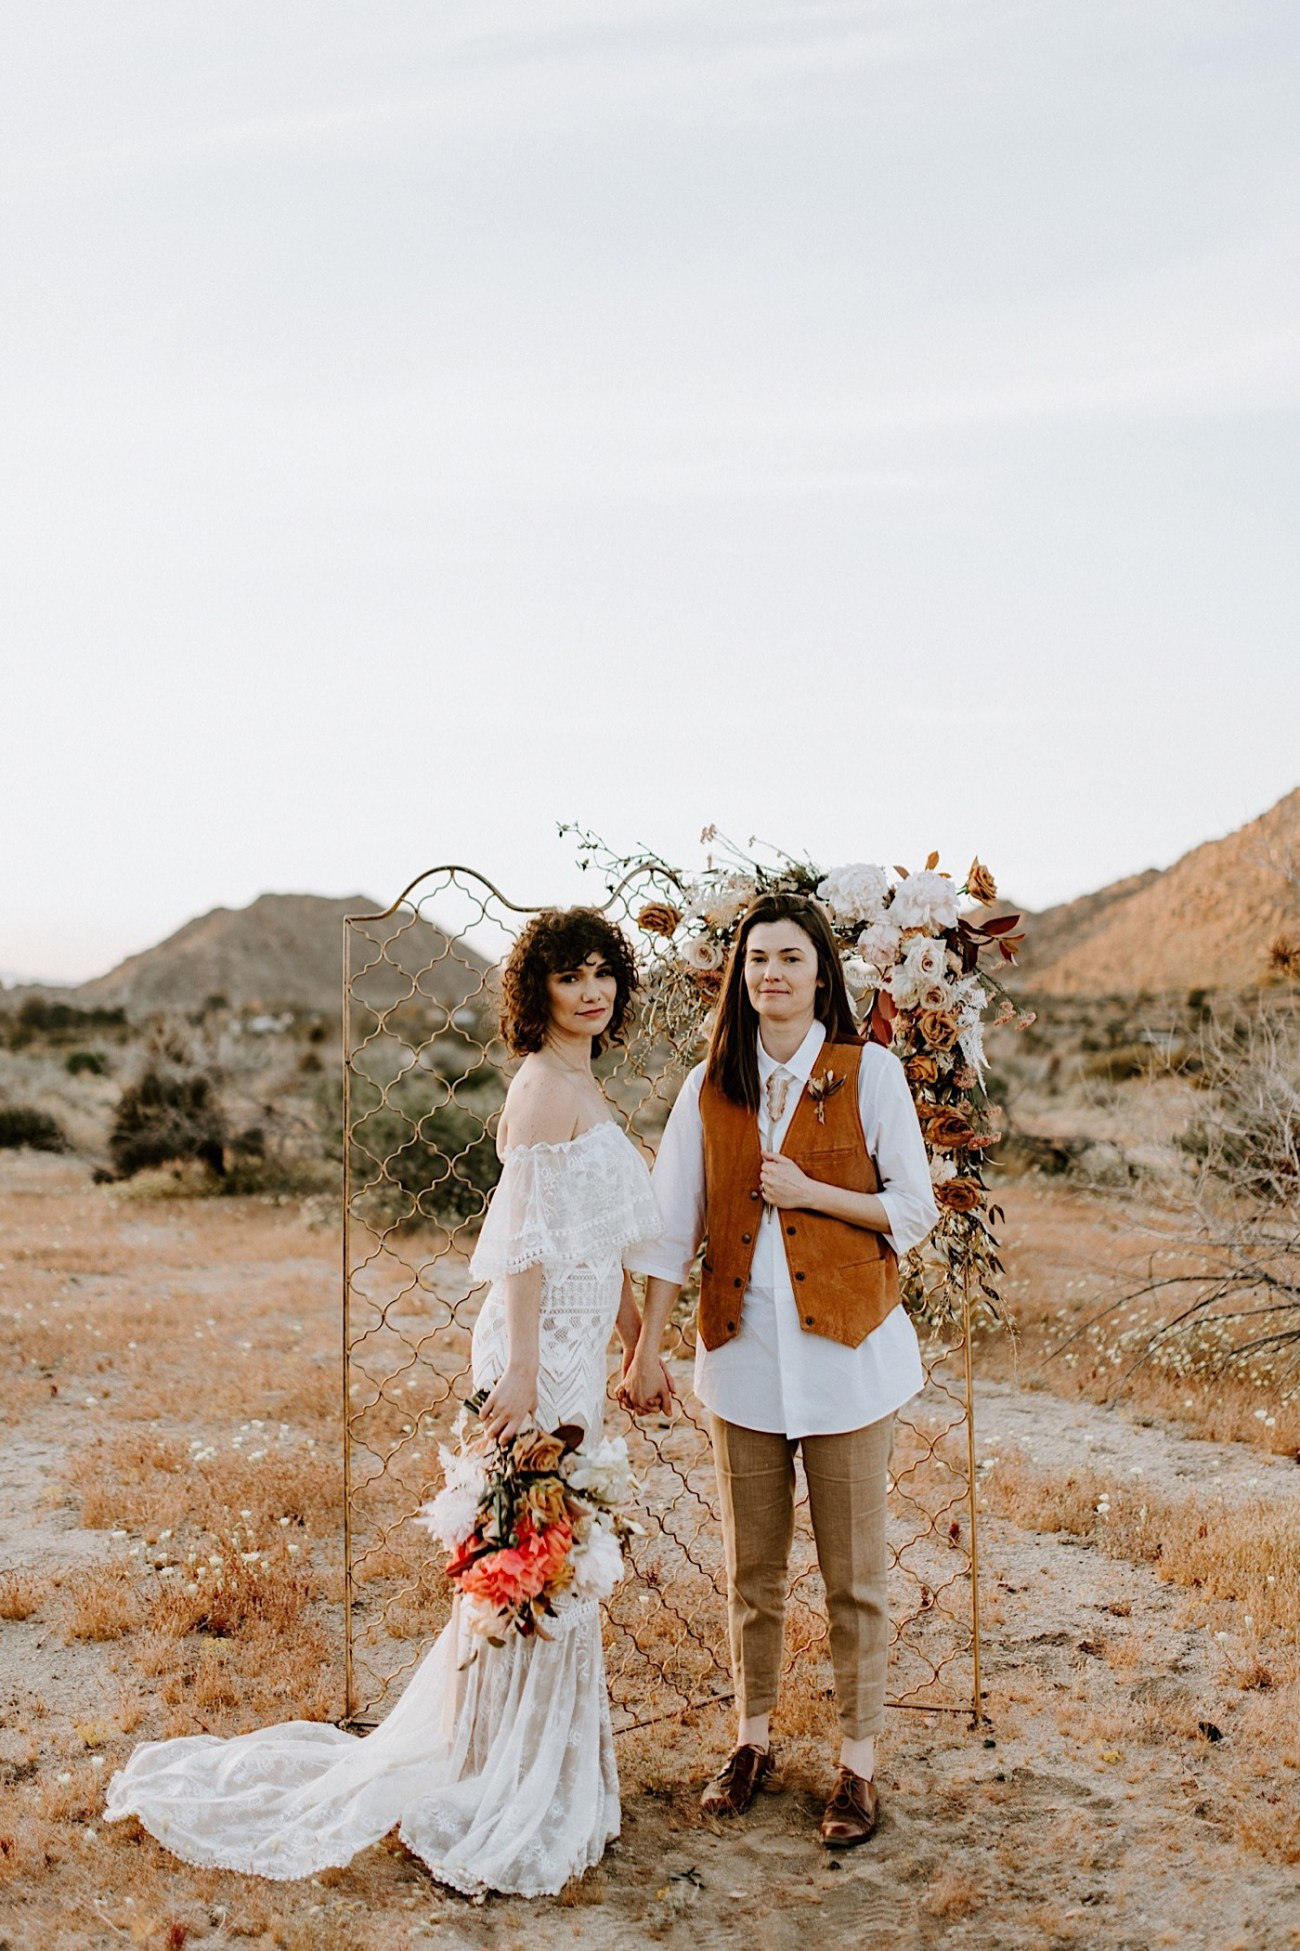 Elopement Ceremony set up in Joshua Tree, couple exchanging vows in Joshua Tree